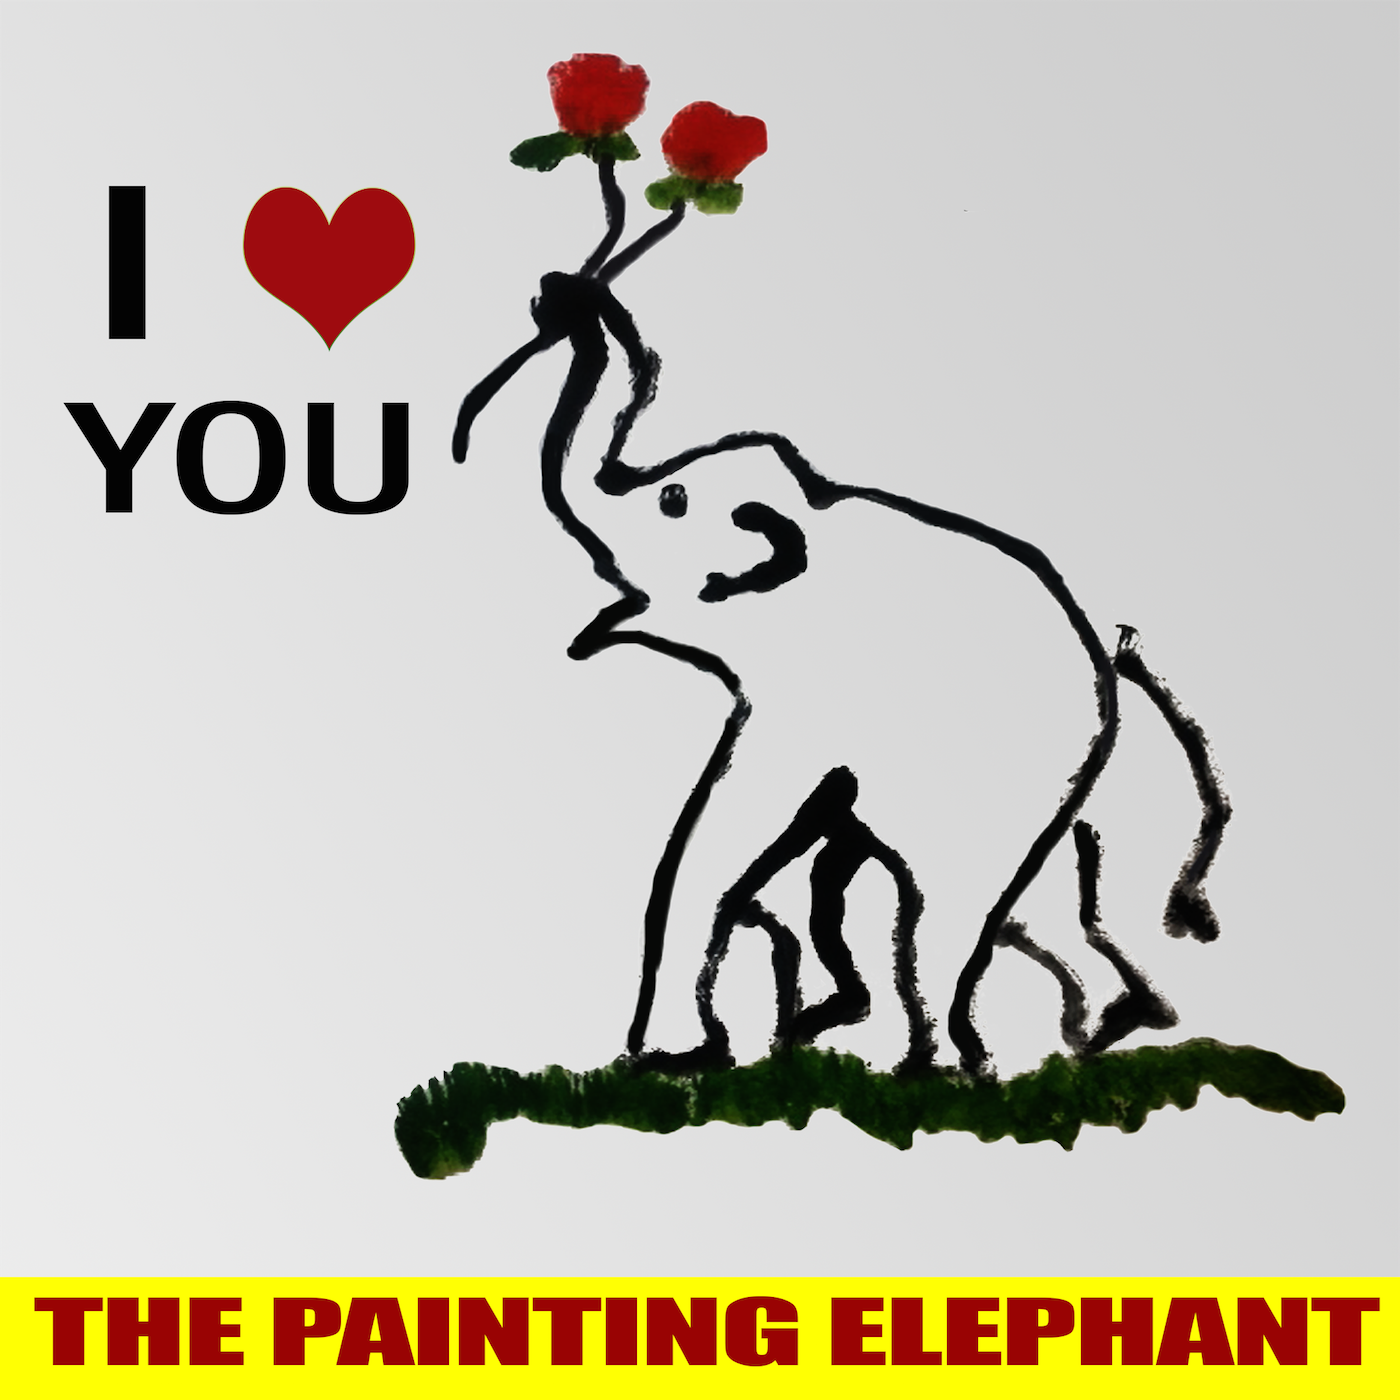 The Painting Elephant